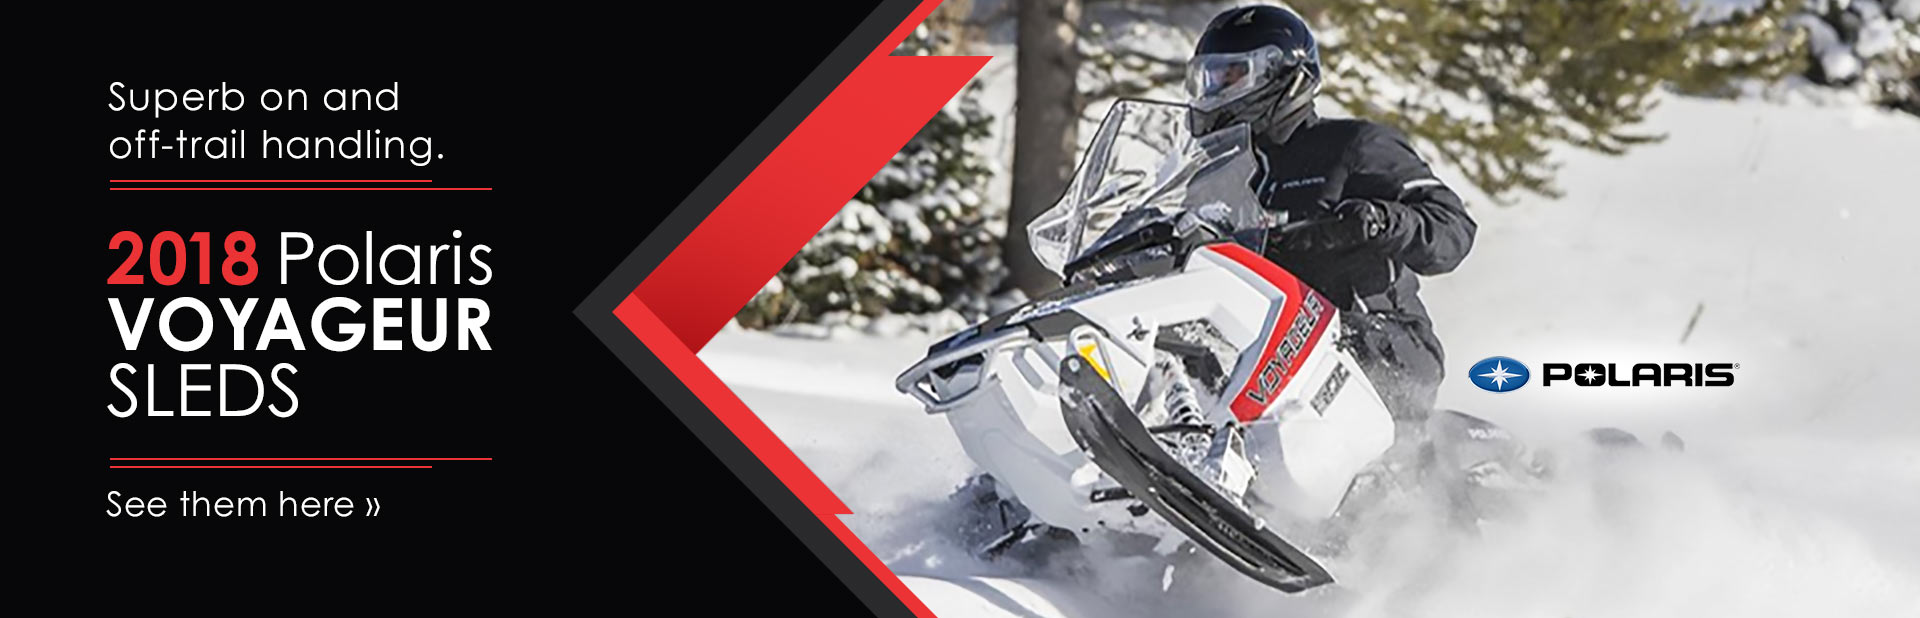 2018 Polaris Voyageur Sleds: Click here to view the models.